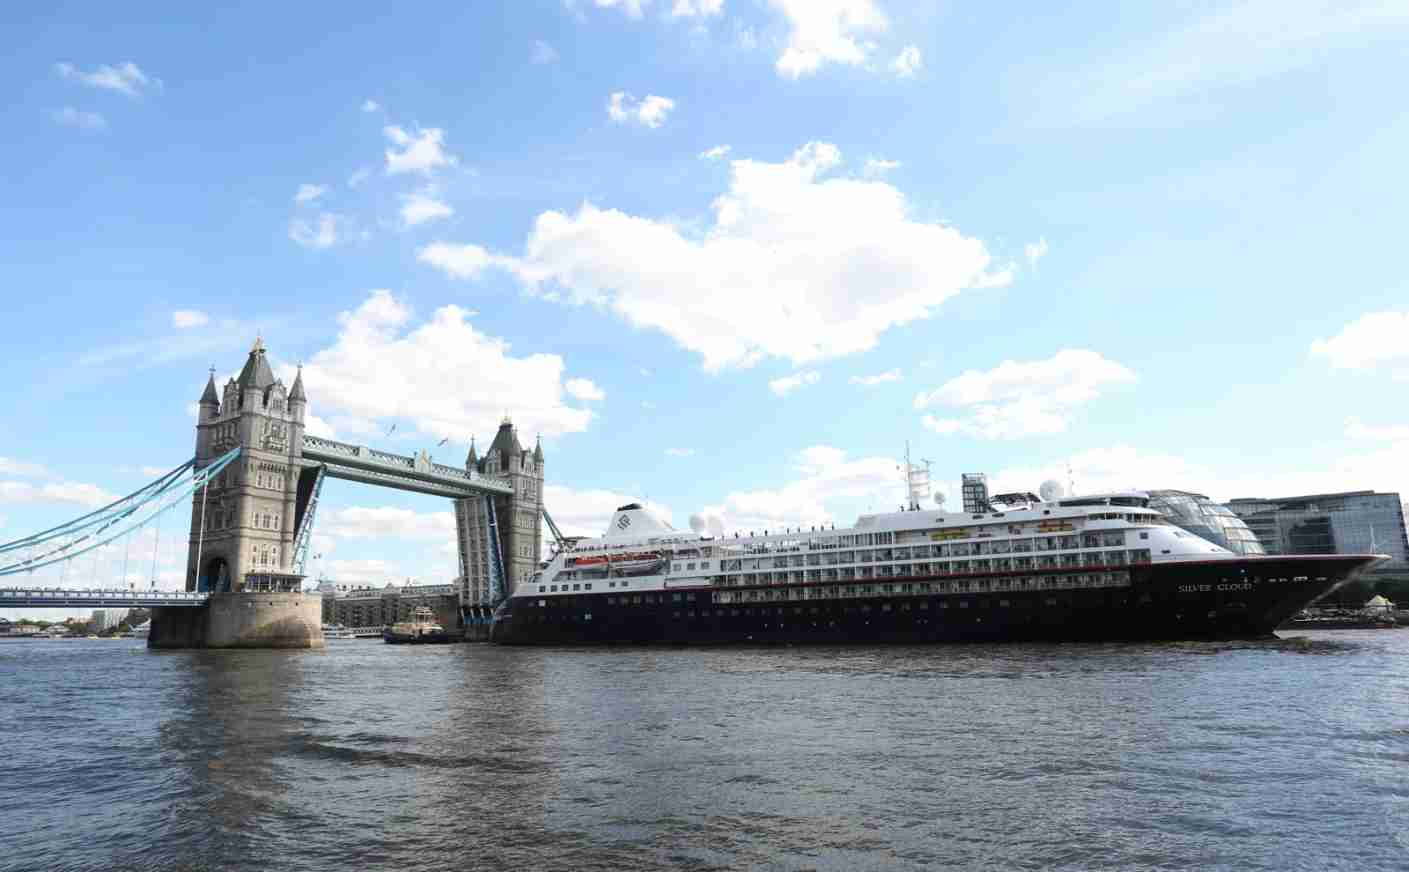 Silver Cloud, a luxury cruise ship operated by Silversea Cruises, leaves Tower Bridge in London. (Photo by Isabel Infantes/PA Images via Getty Images)